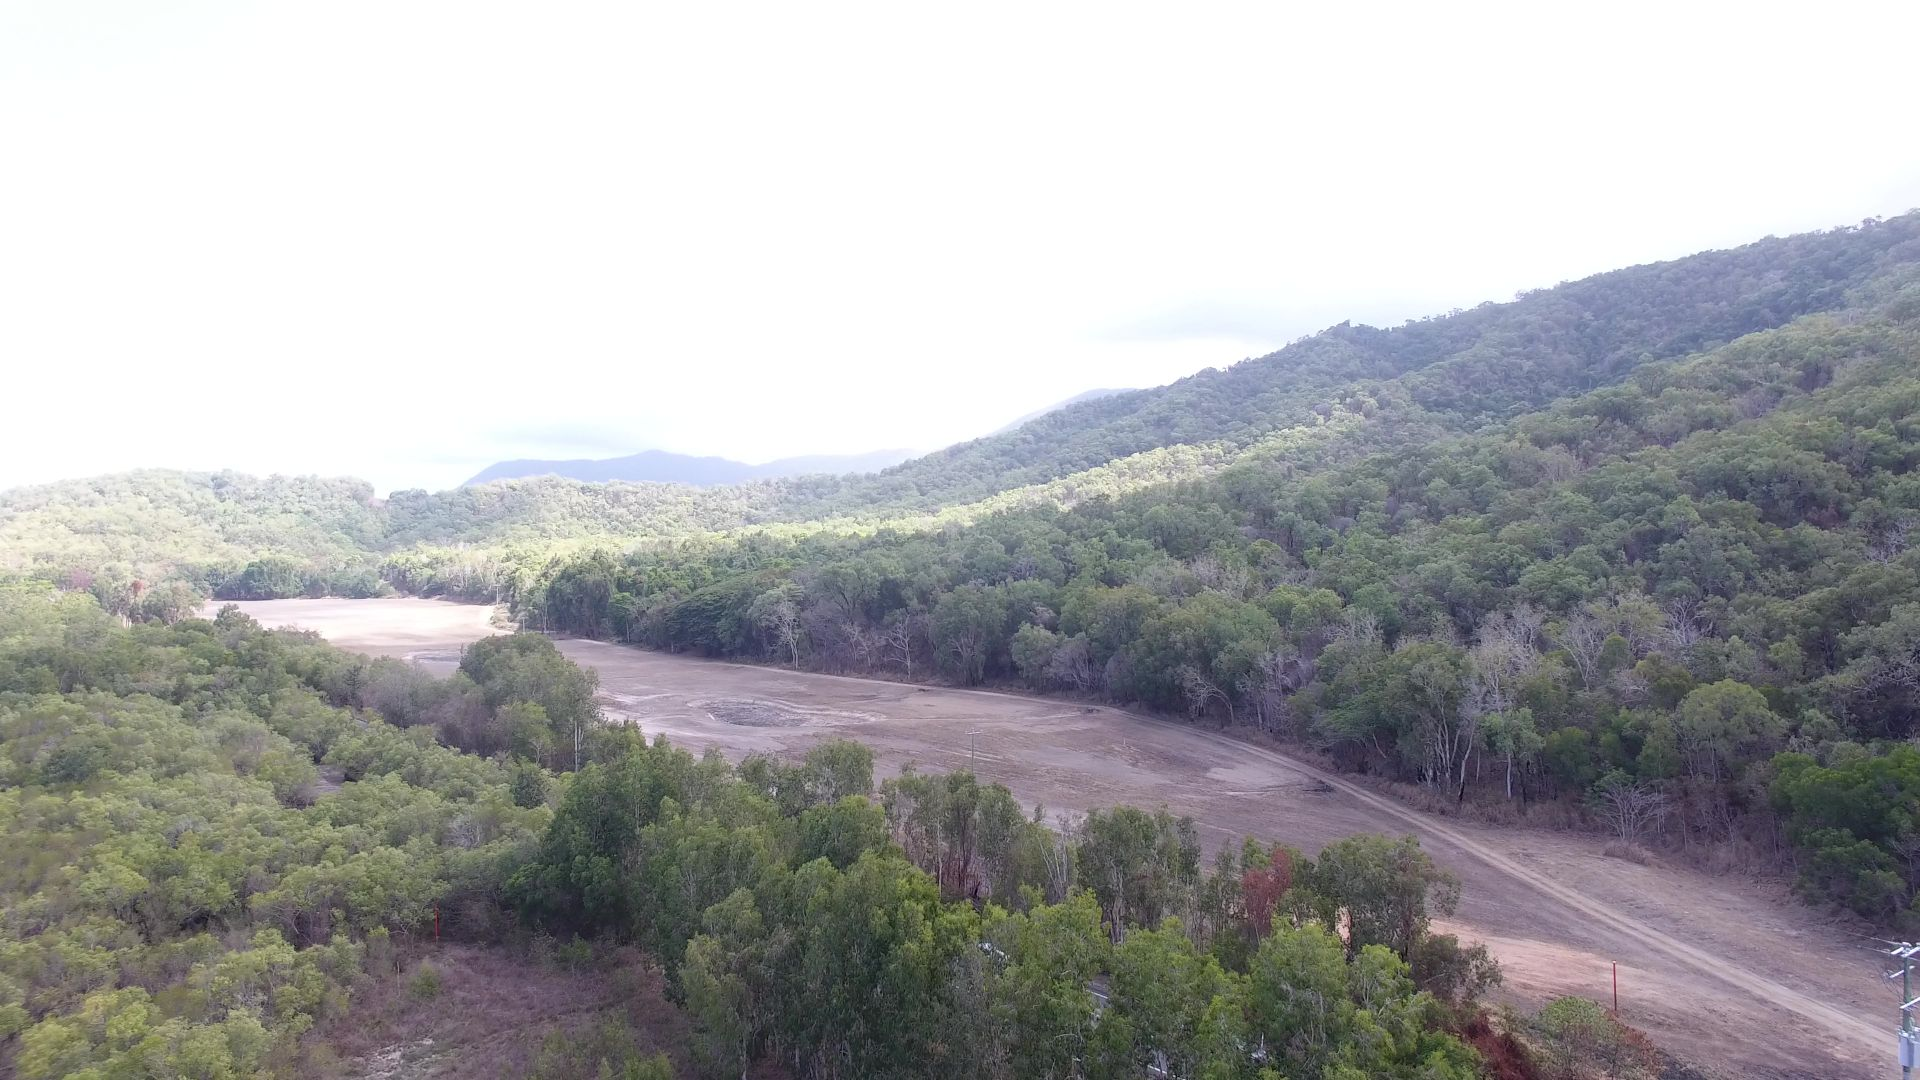 Lot 2 Lot 79 Captain Cook Highway, Mowbray QLD 4877, Image 1